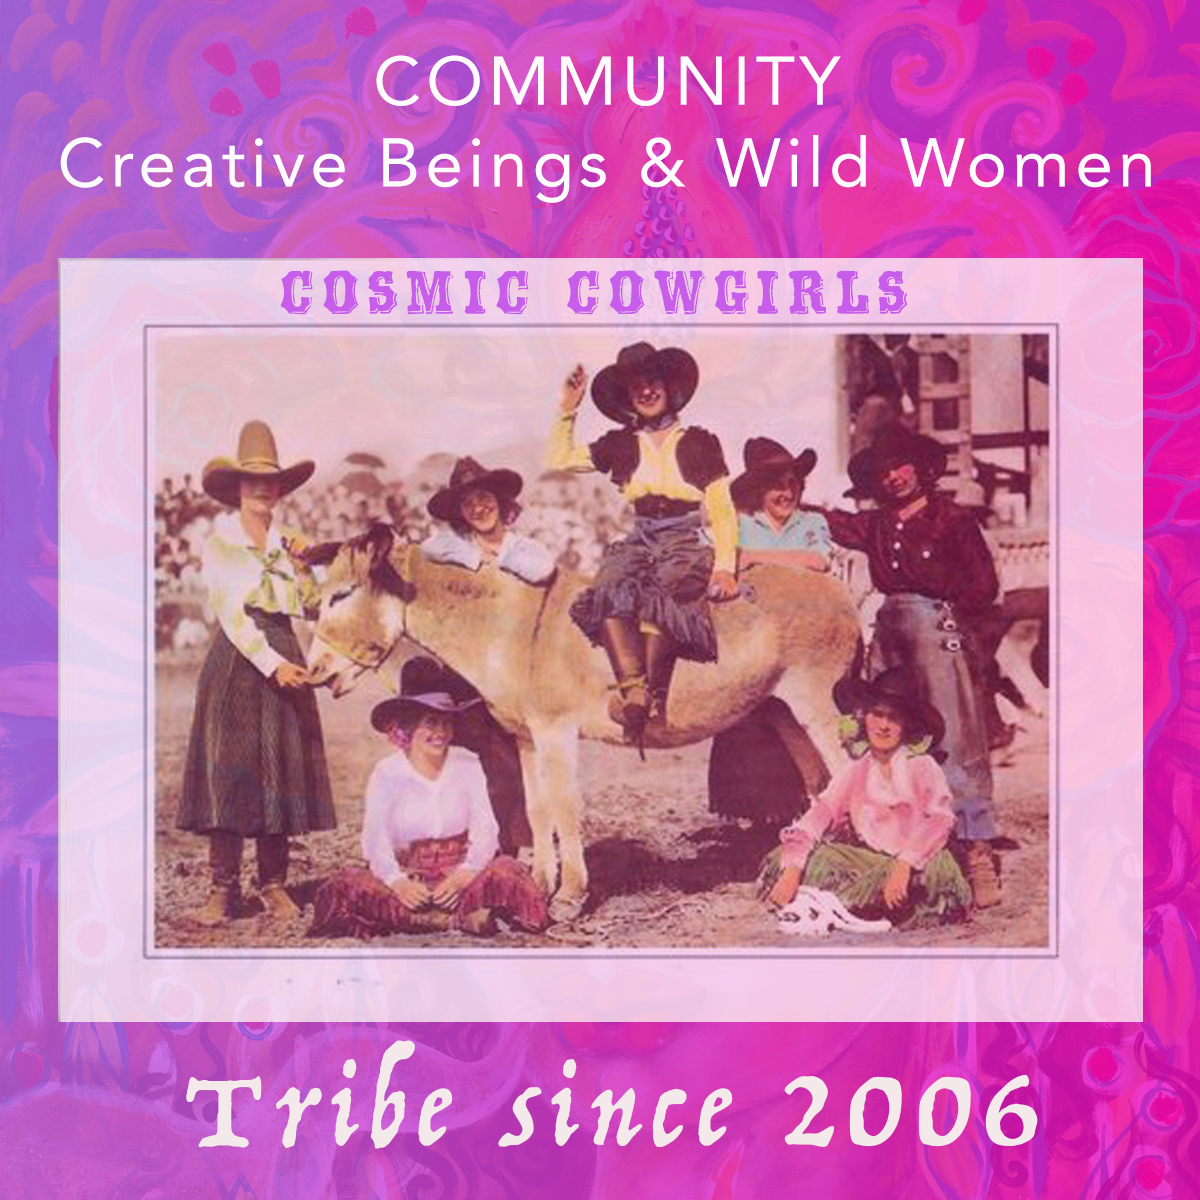 Collaborations with the www.CosmicCowgirls.com